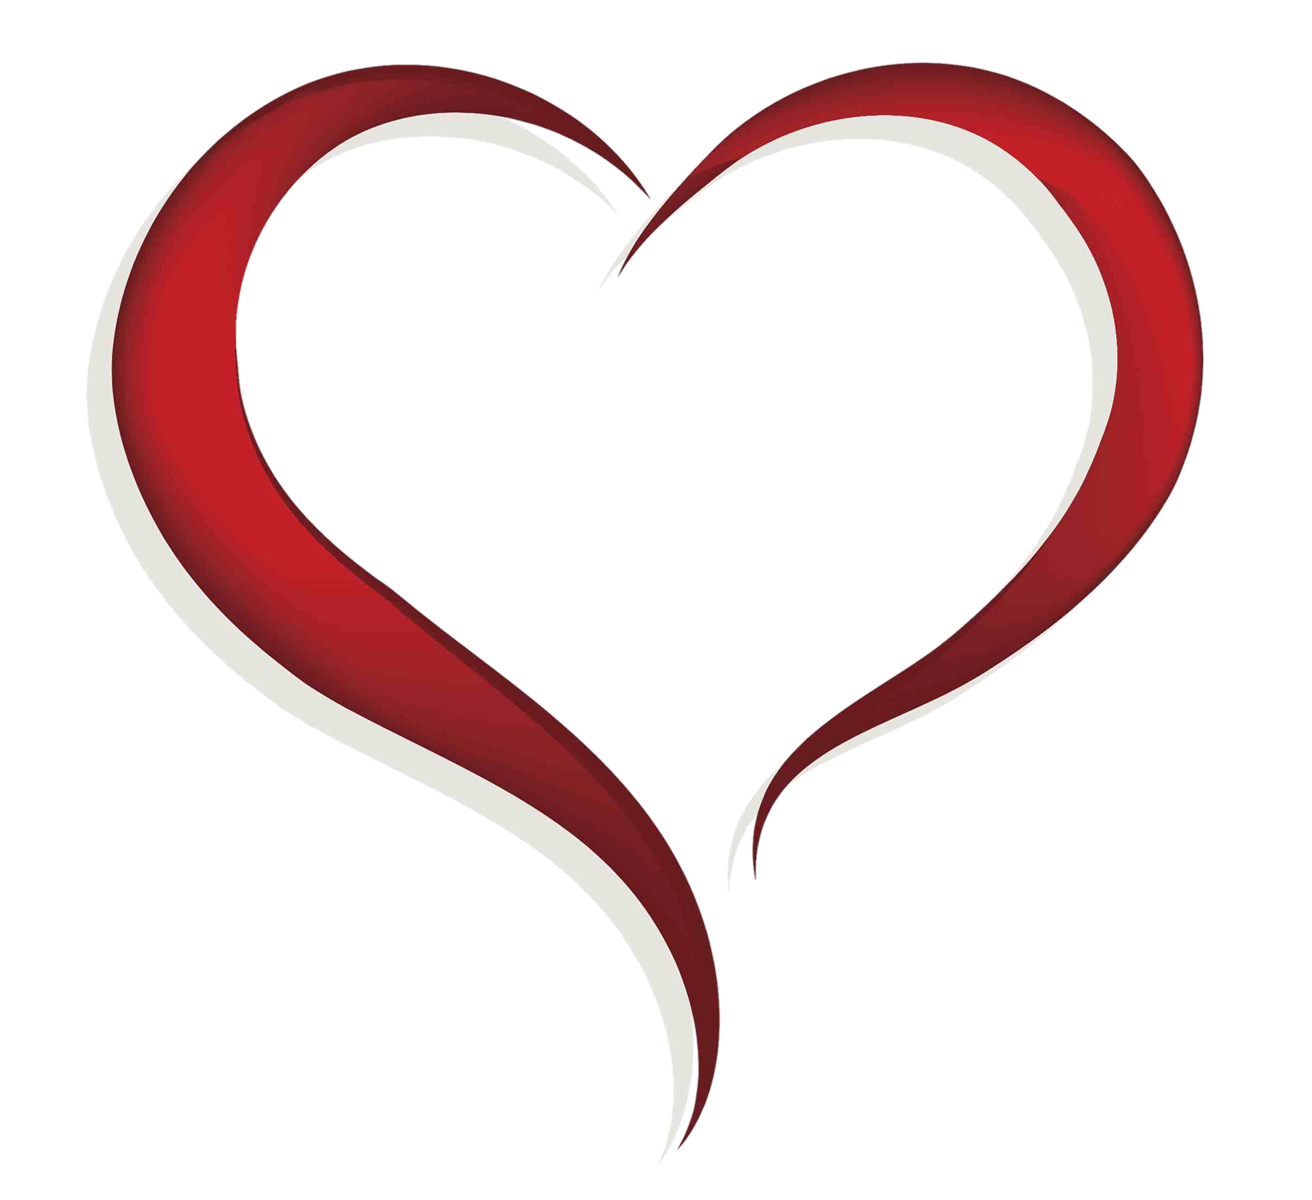 Hearts clipart human. Heart with transparent background